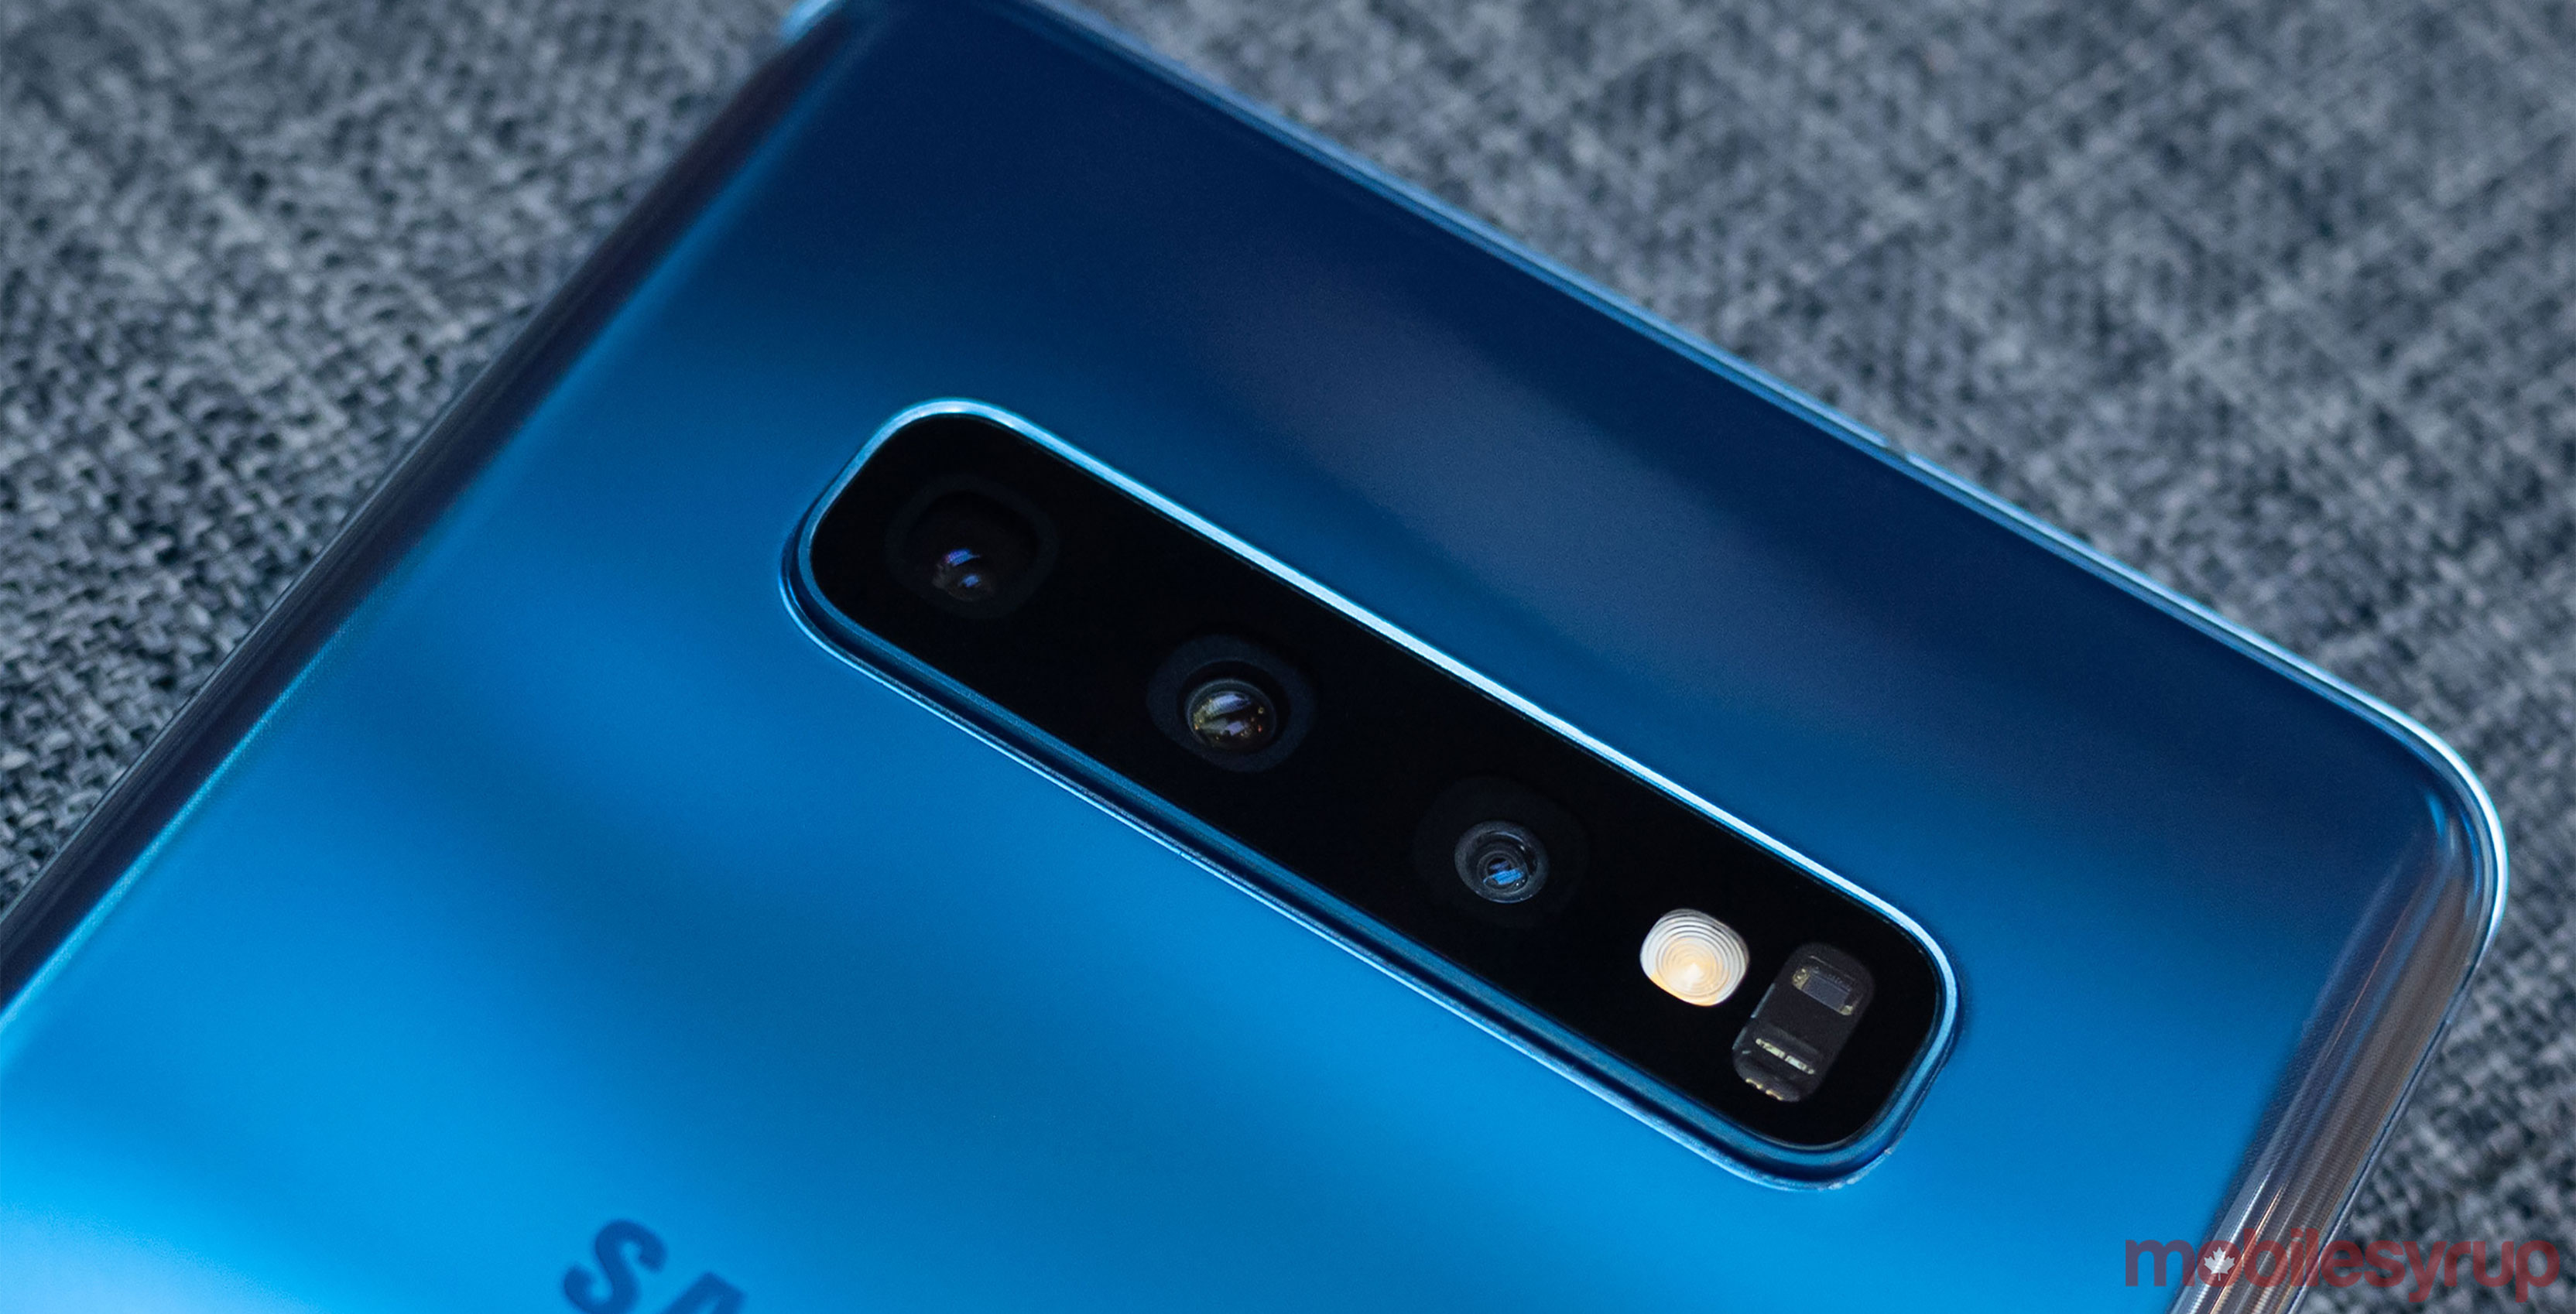 Samsung Messages native RCS support coming to Galaxy S10